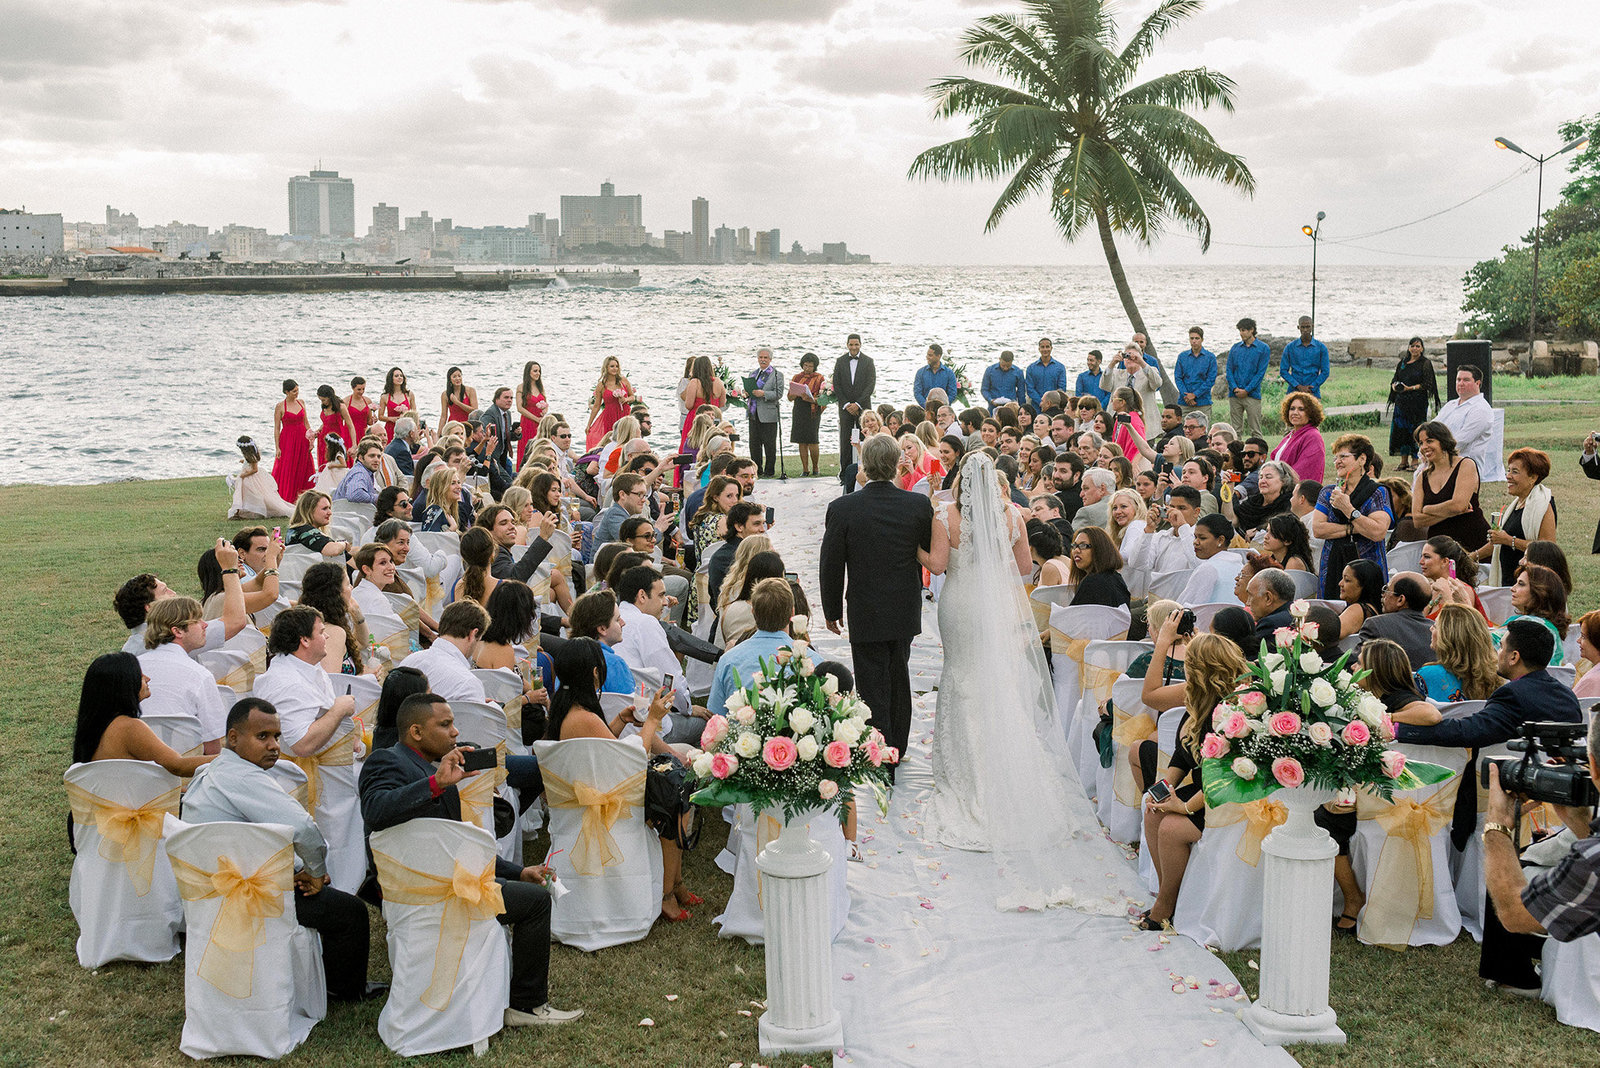 20150328-Pura-Soul-Photo-Cuba-Wedding-48